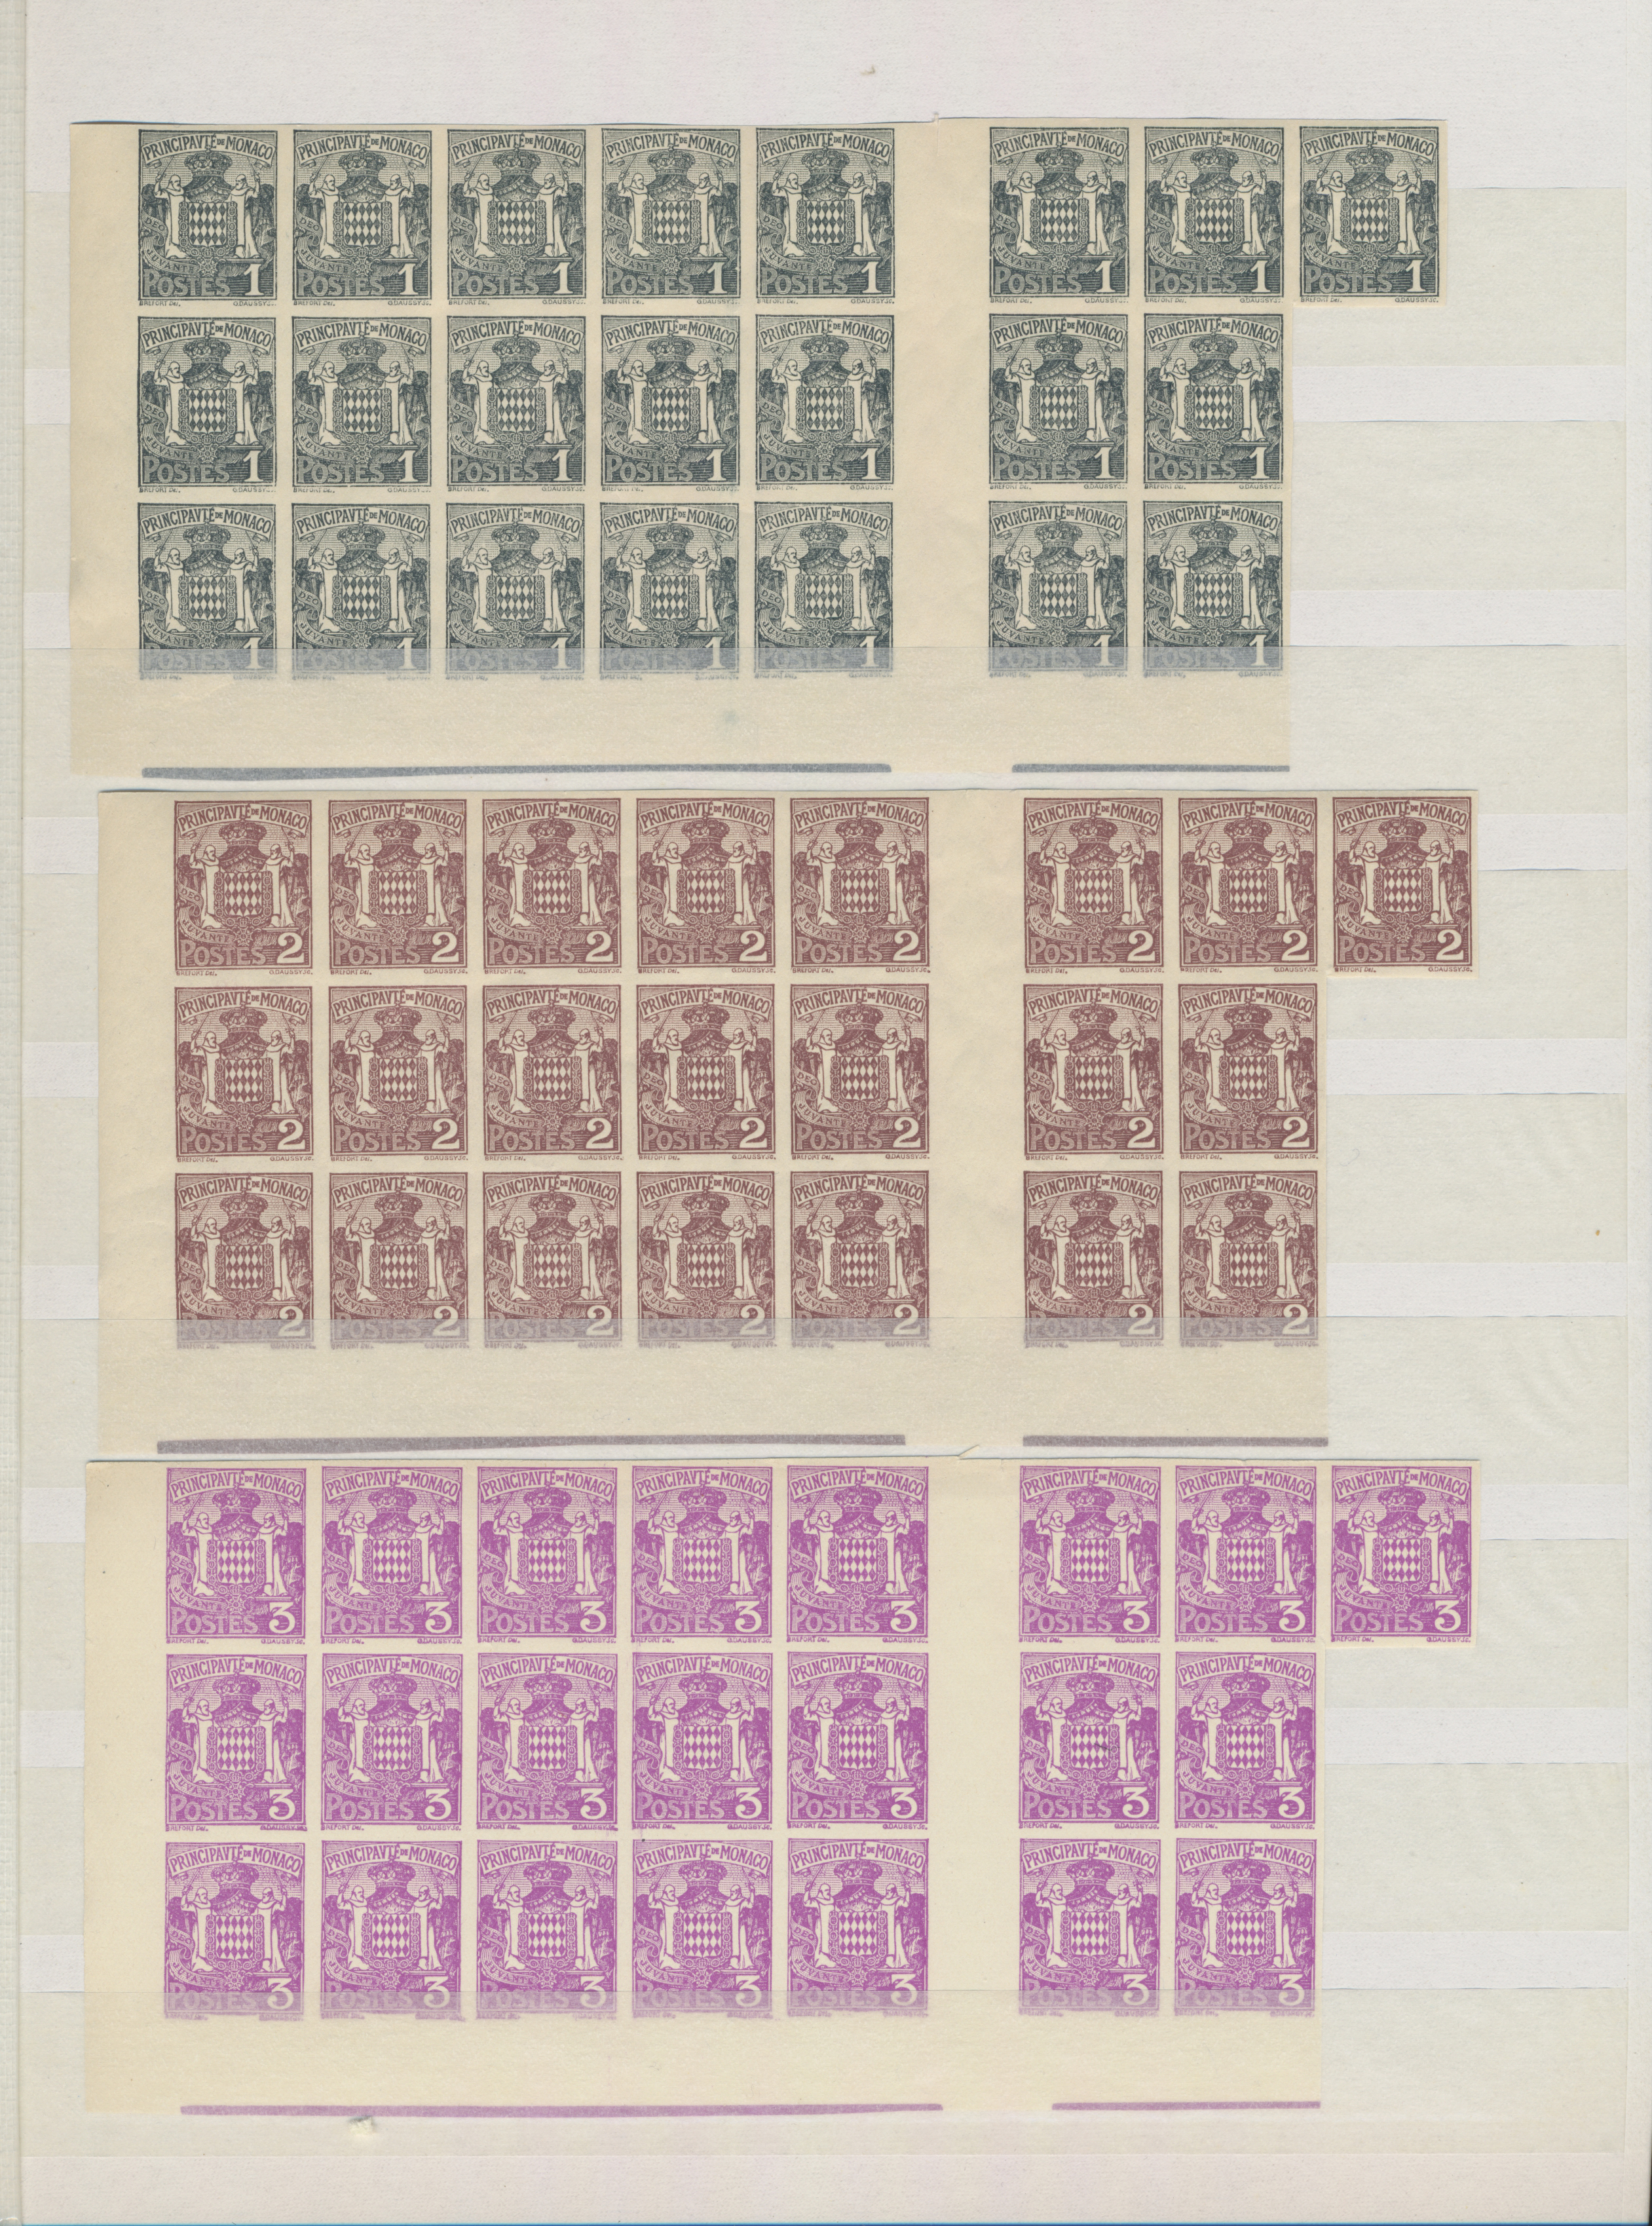 Lot 18844 - Monaco  -  Auktionshaus Christoph Gärtner GmbH & Co. KG 50th Auction Anniversary Auction - Day 5